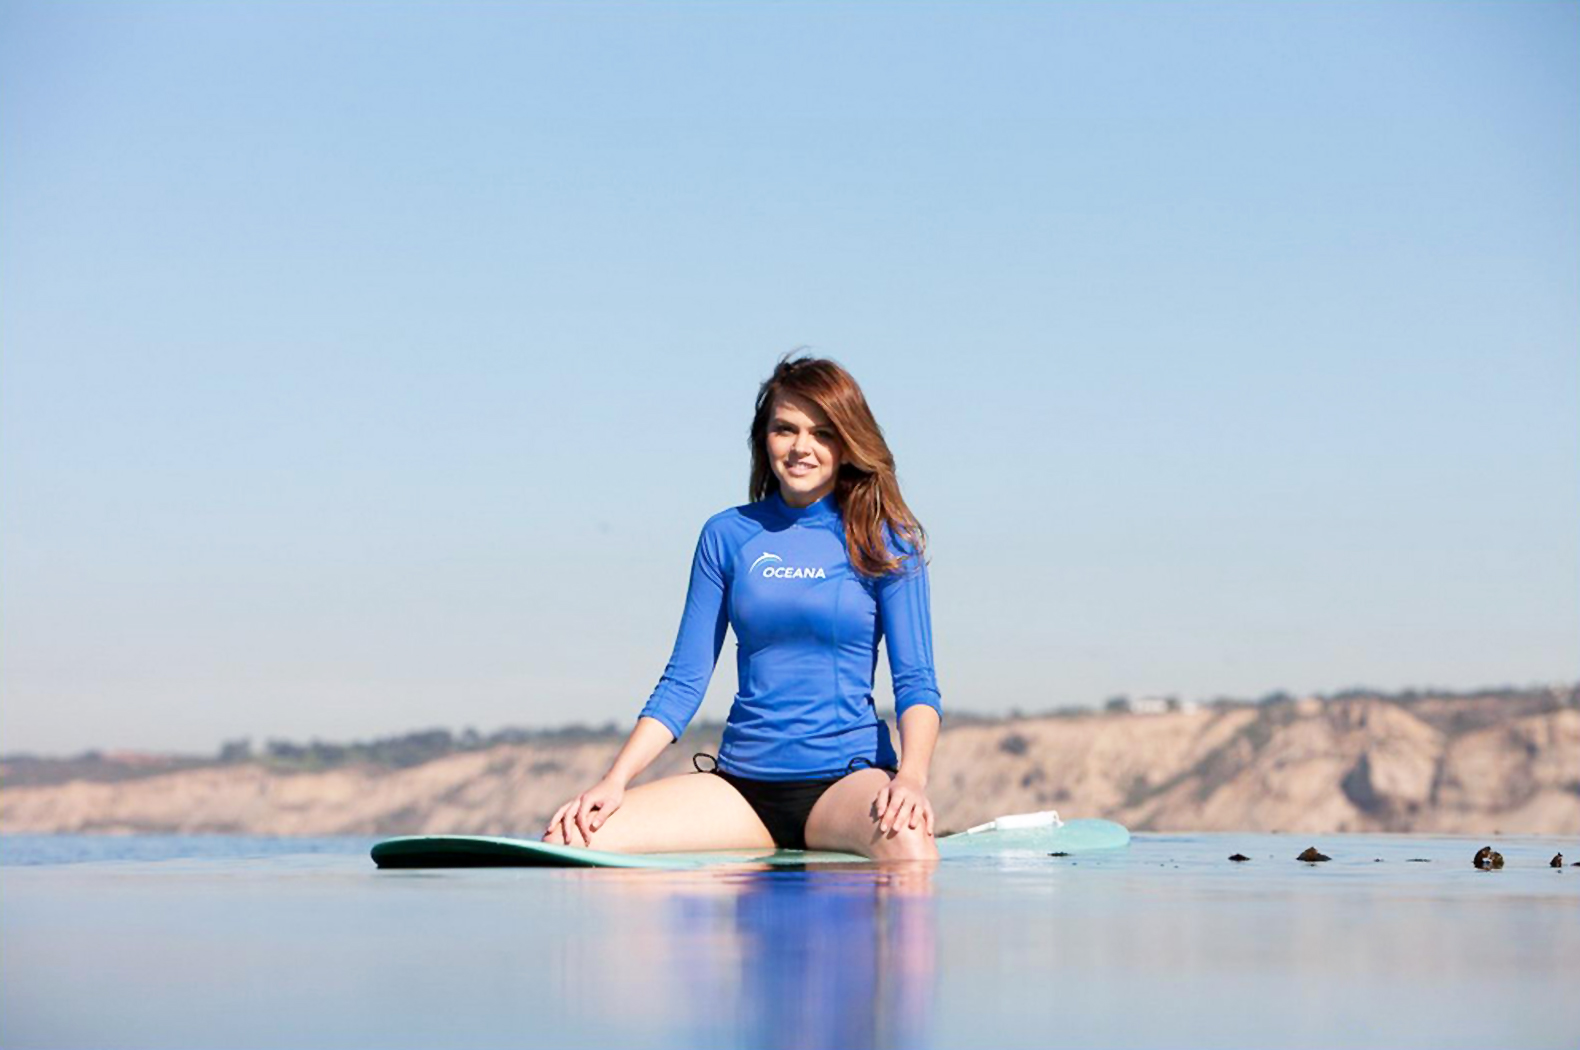 Aimee Teegarden 2012 : Aimee Teegarden – PSA for Oceana-04